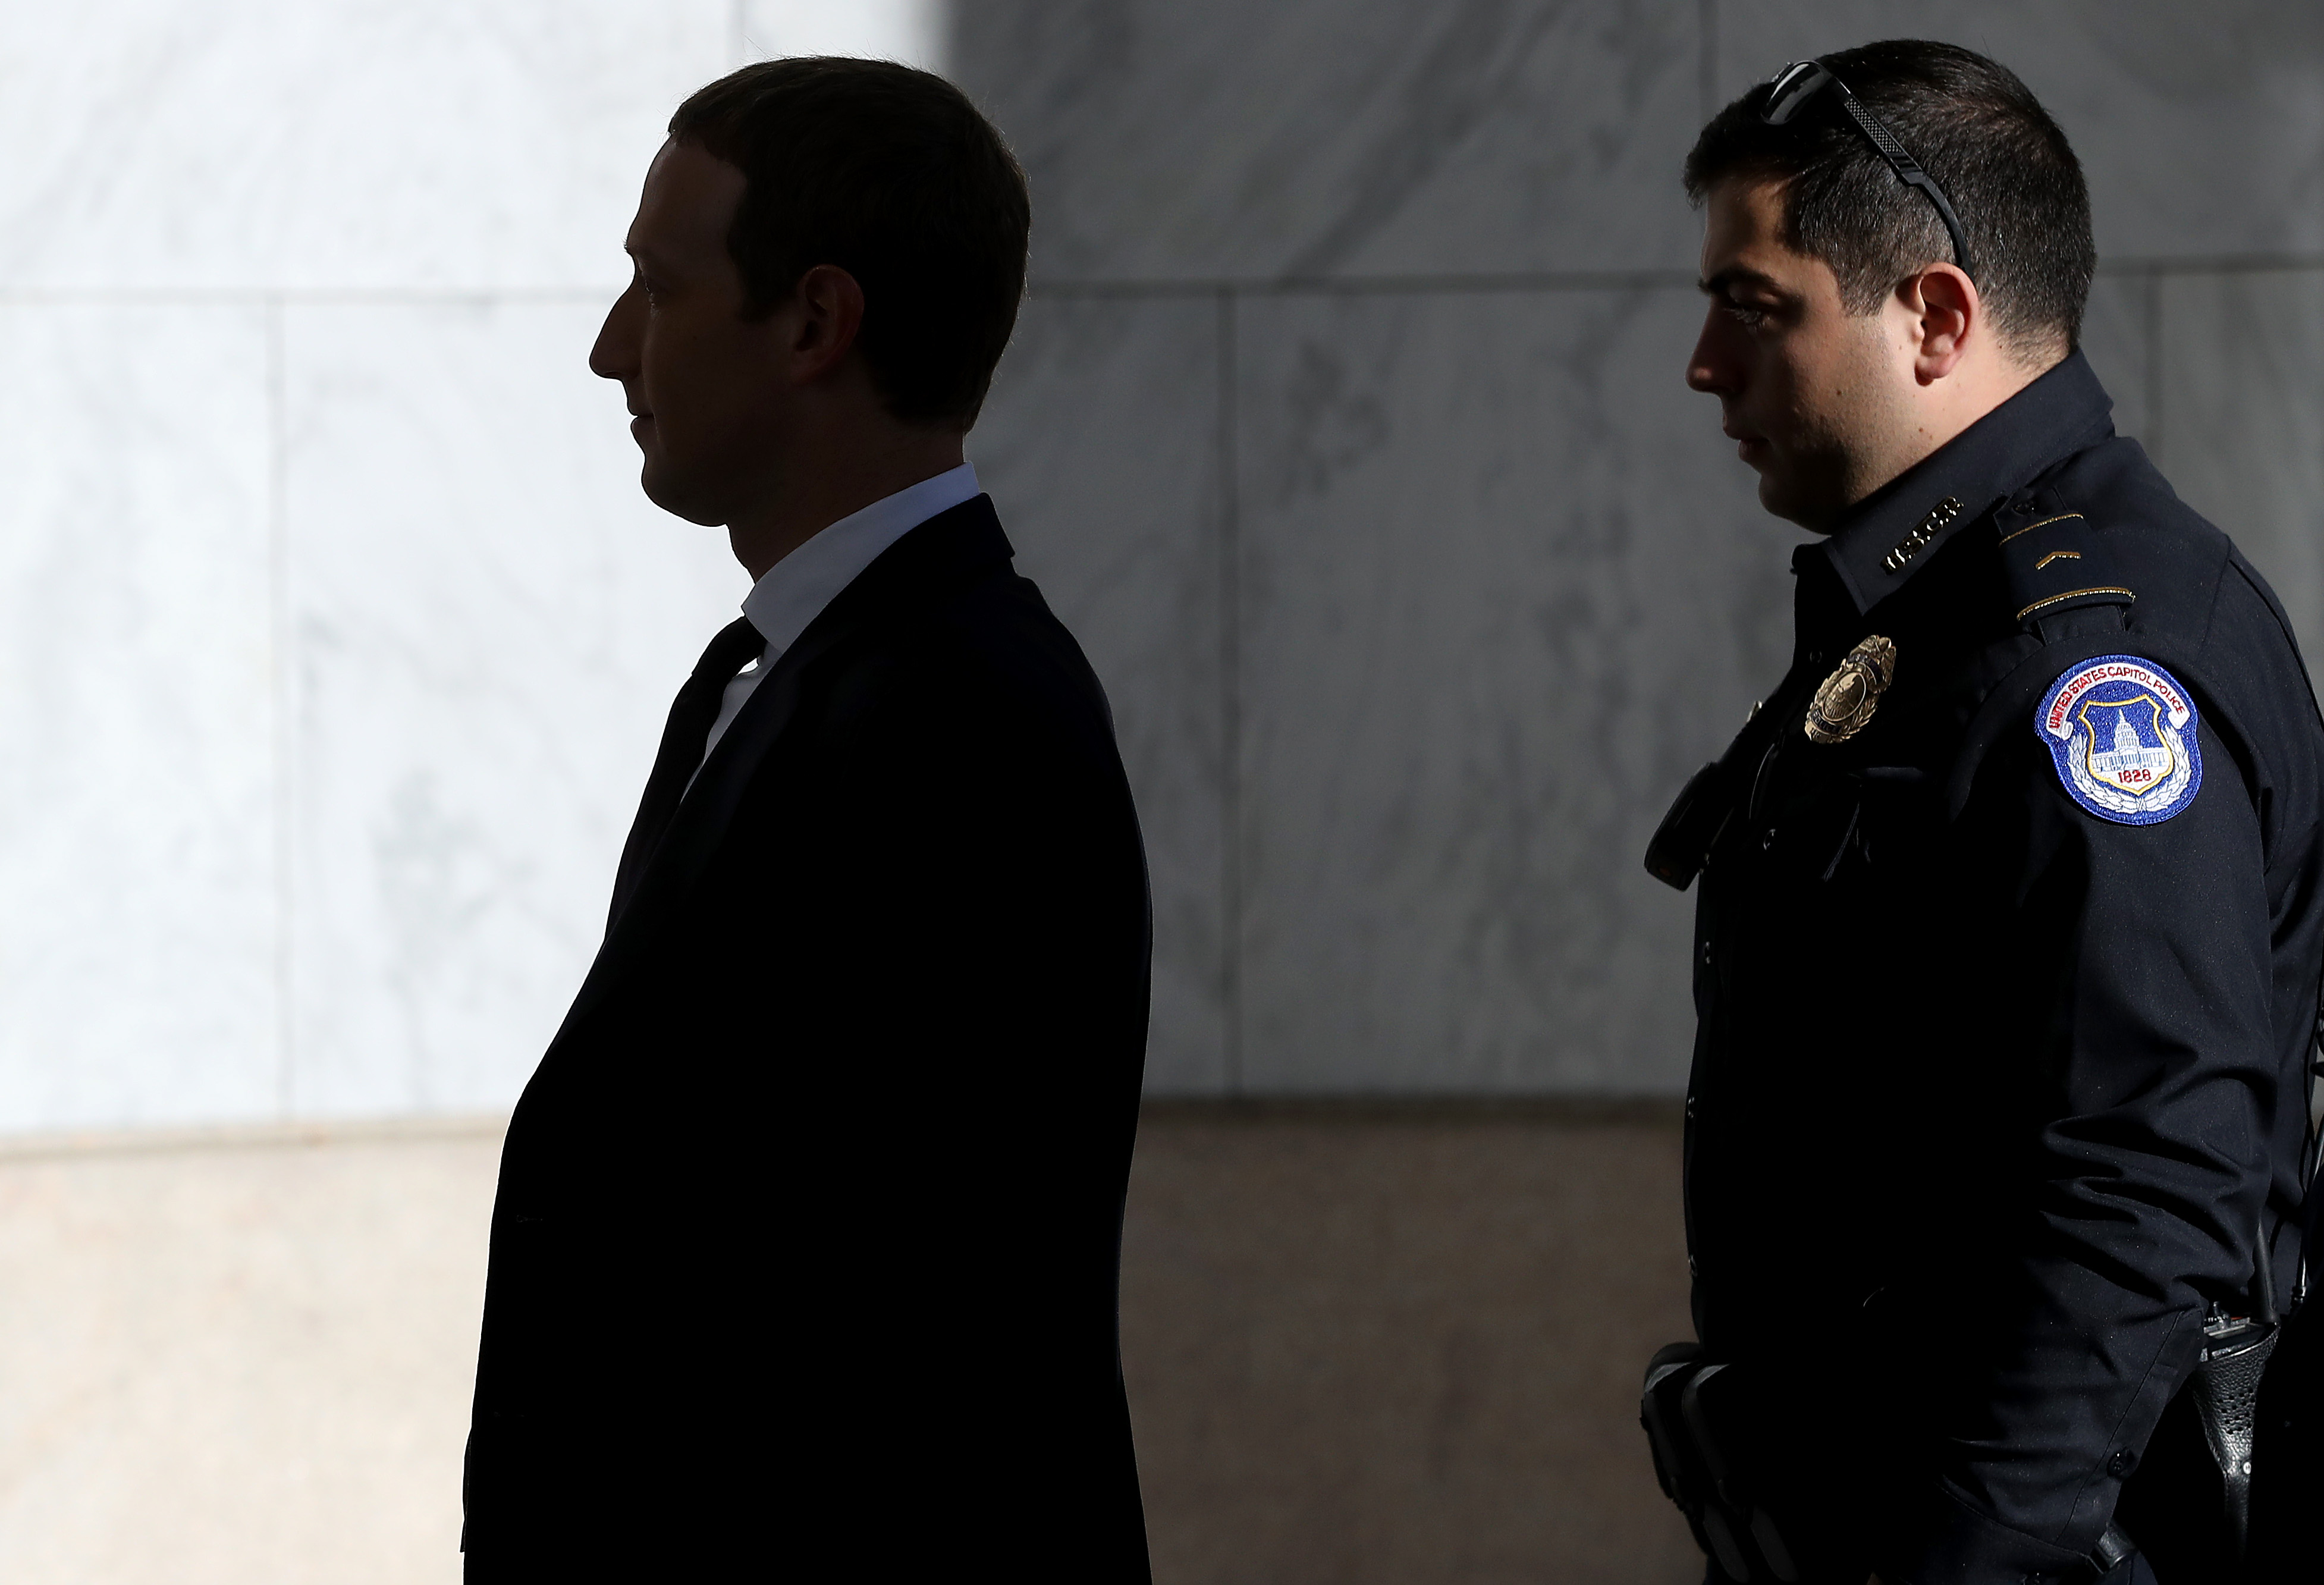 Mark Zuckerberg walking into Congress followed by a security official.